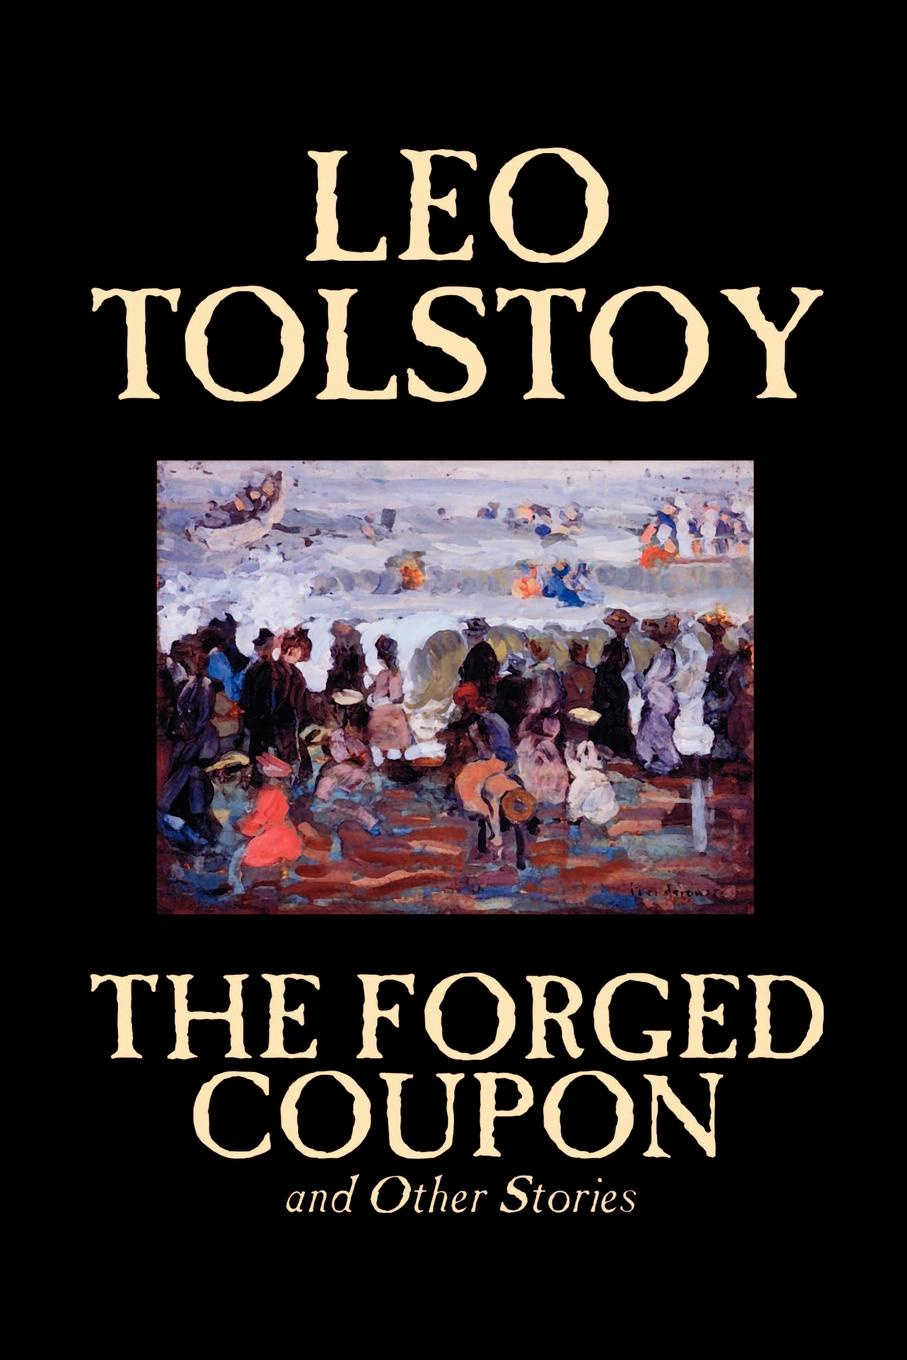 Leo Tolstoy The Forged Coupon and Other Stories by Leo Tolstoy, Fiction, Short Stories leo tolstoy fyodor mikhailovich dostoevsky embers of a revolution by leo tolstoy fiction classics literary